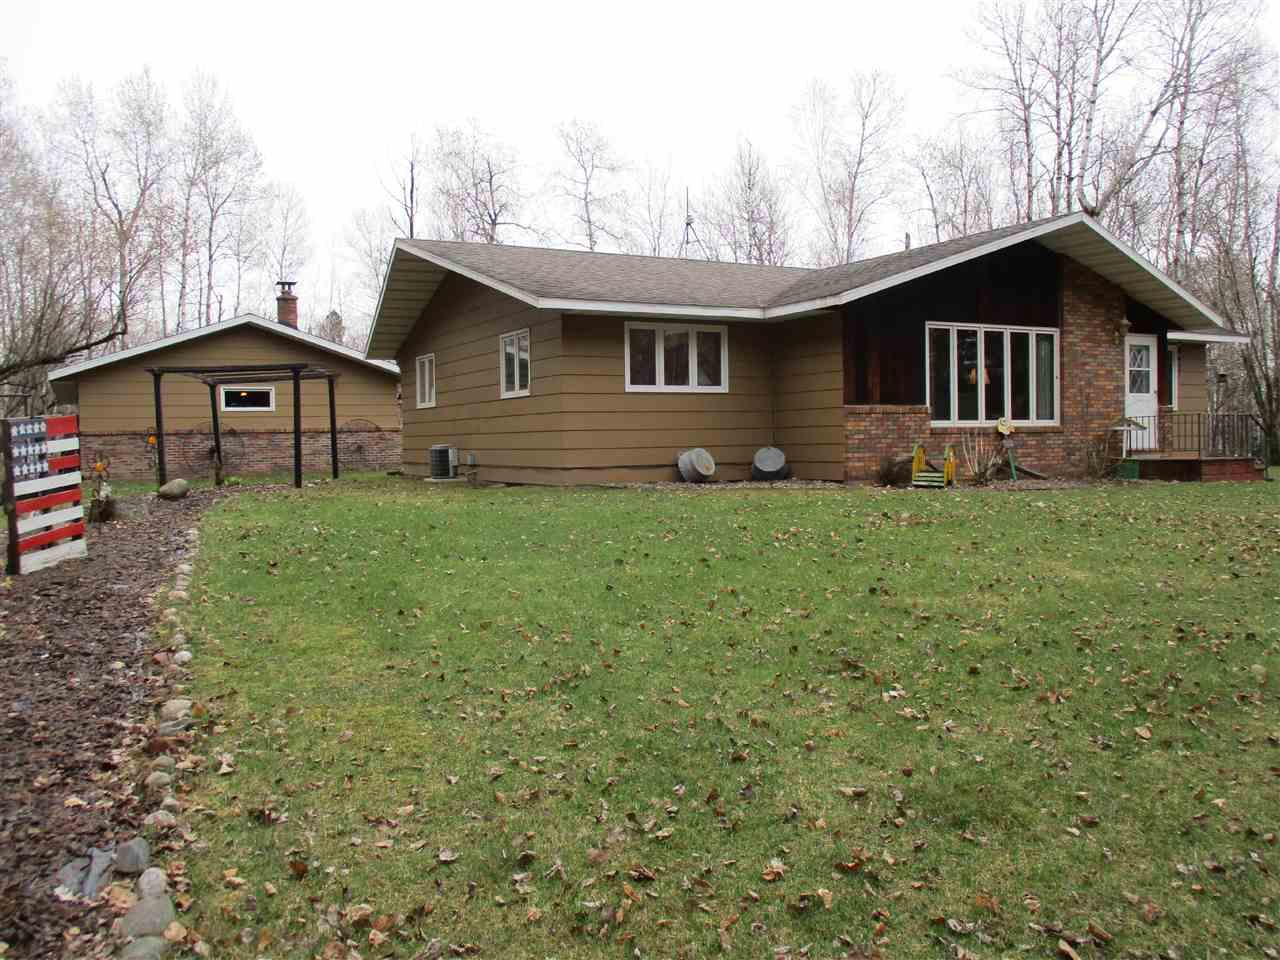 Well maintained 3+ bedroom, 2.5 bath country ranch home on +/-4.02 acres located northwest of Medford. Spacious oak kitchen with breakfast bar and walk-in pantry. Dining room. Large living room. Poured concrete basement finished with a family/rec room with bar, bonus room and bathroom. Updated roof and mound septic system. 3 car detached garage. The refrigerator, stove, dishwasher, washer, dryer, window coverings and basement bar stools are included in the sale price.